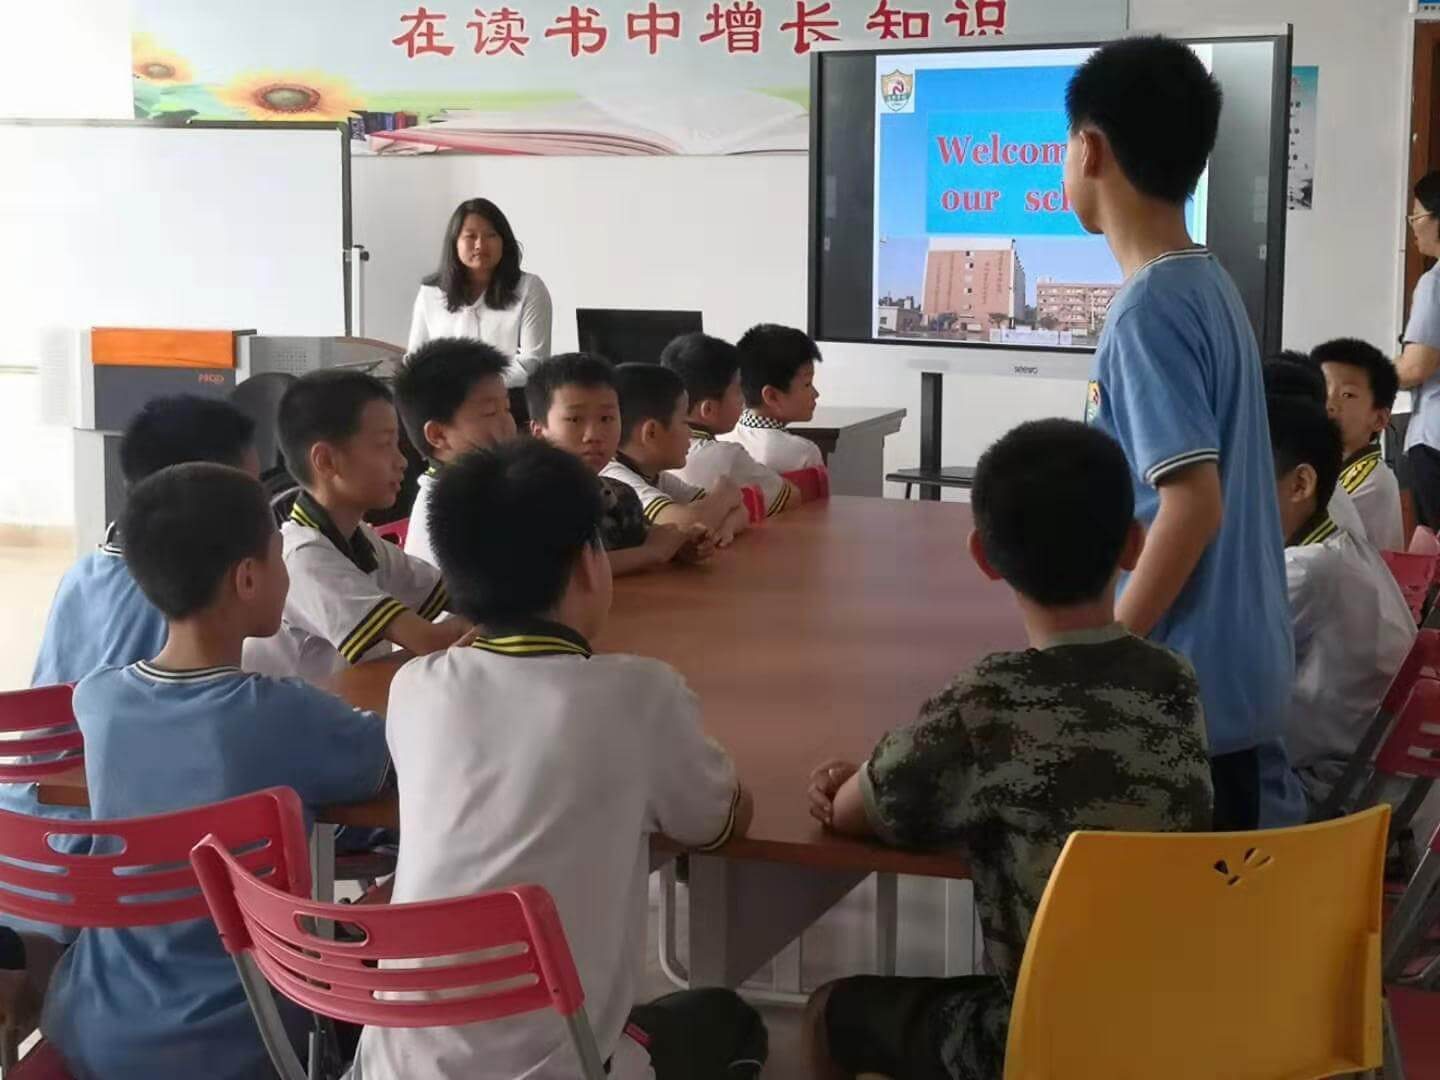 Ming listens to a question while presenting to children at a school